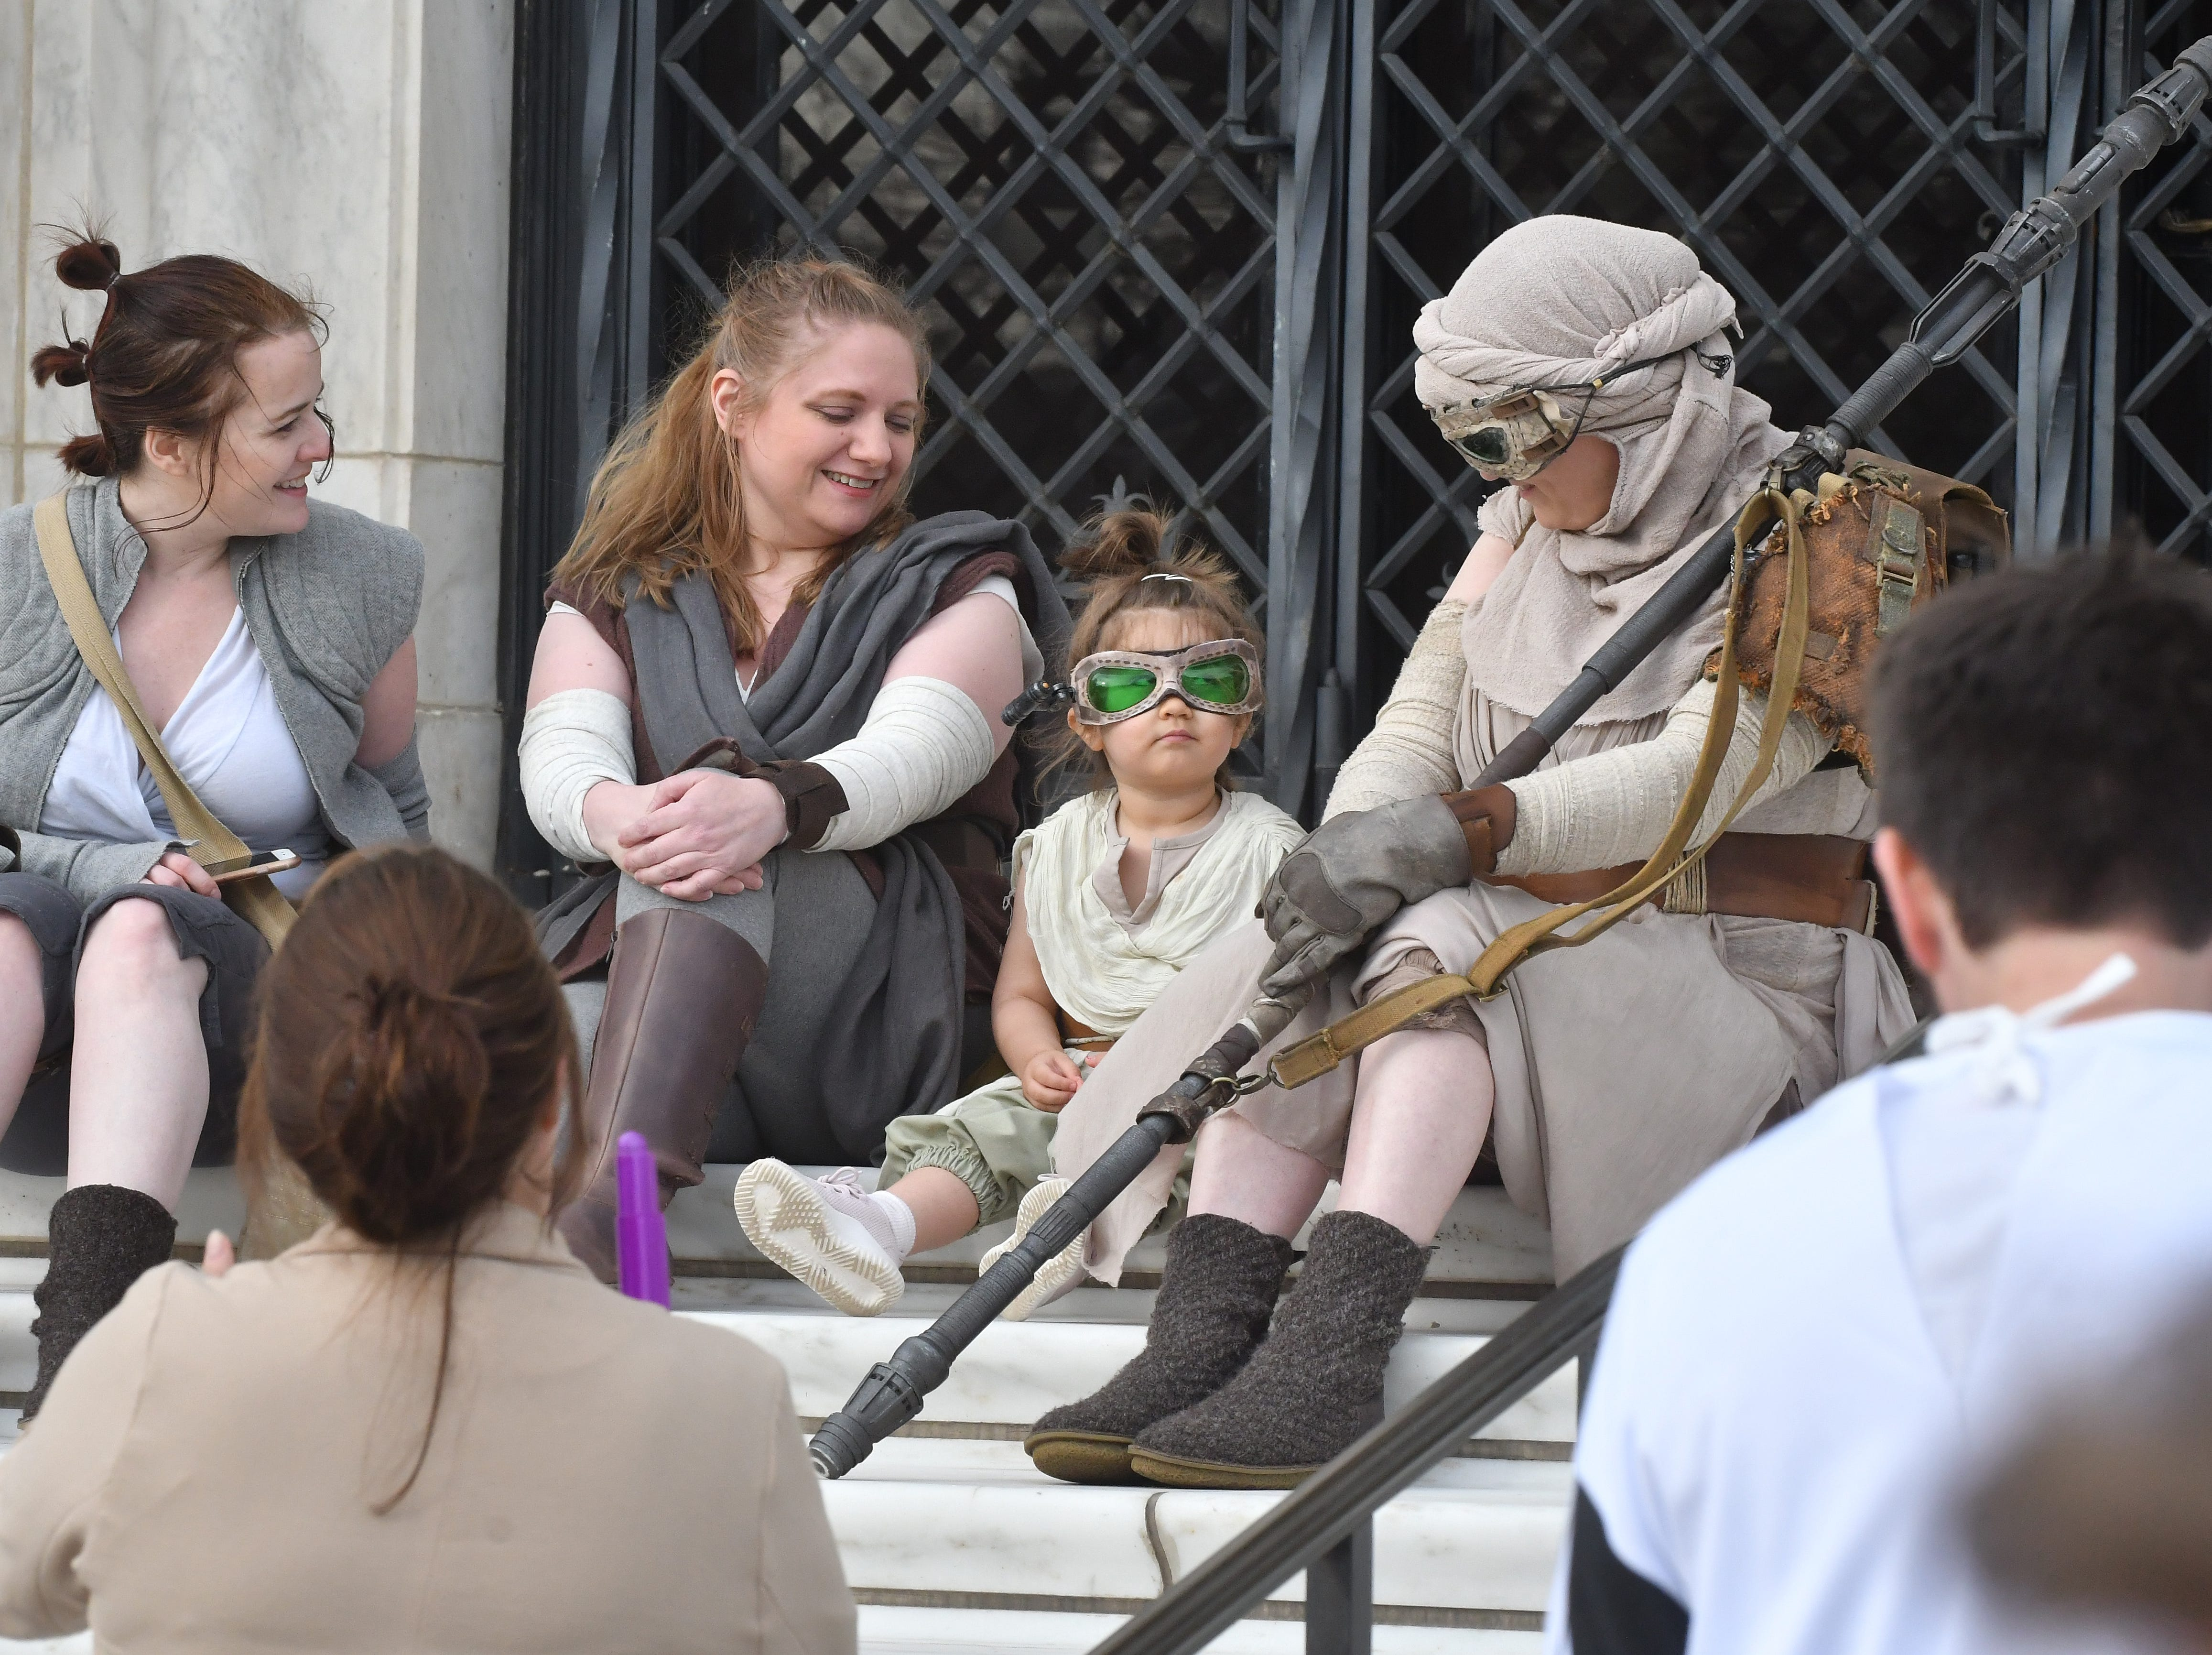 A gaggle of 'Jedi Rey' characters chat on the steps of the Detroit Institute of Arts on May 4 (May the Fourth be with you, get it?). From left, Anna Rossmann, Martha Green, Molly Malangone, 3, and Kristen Jones accepted the DIA's invitation for a fan photo shoot in advance of the exhibit 'Star Wars and The Power of Costume.'